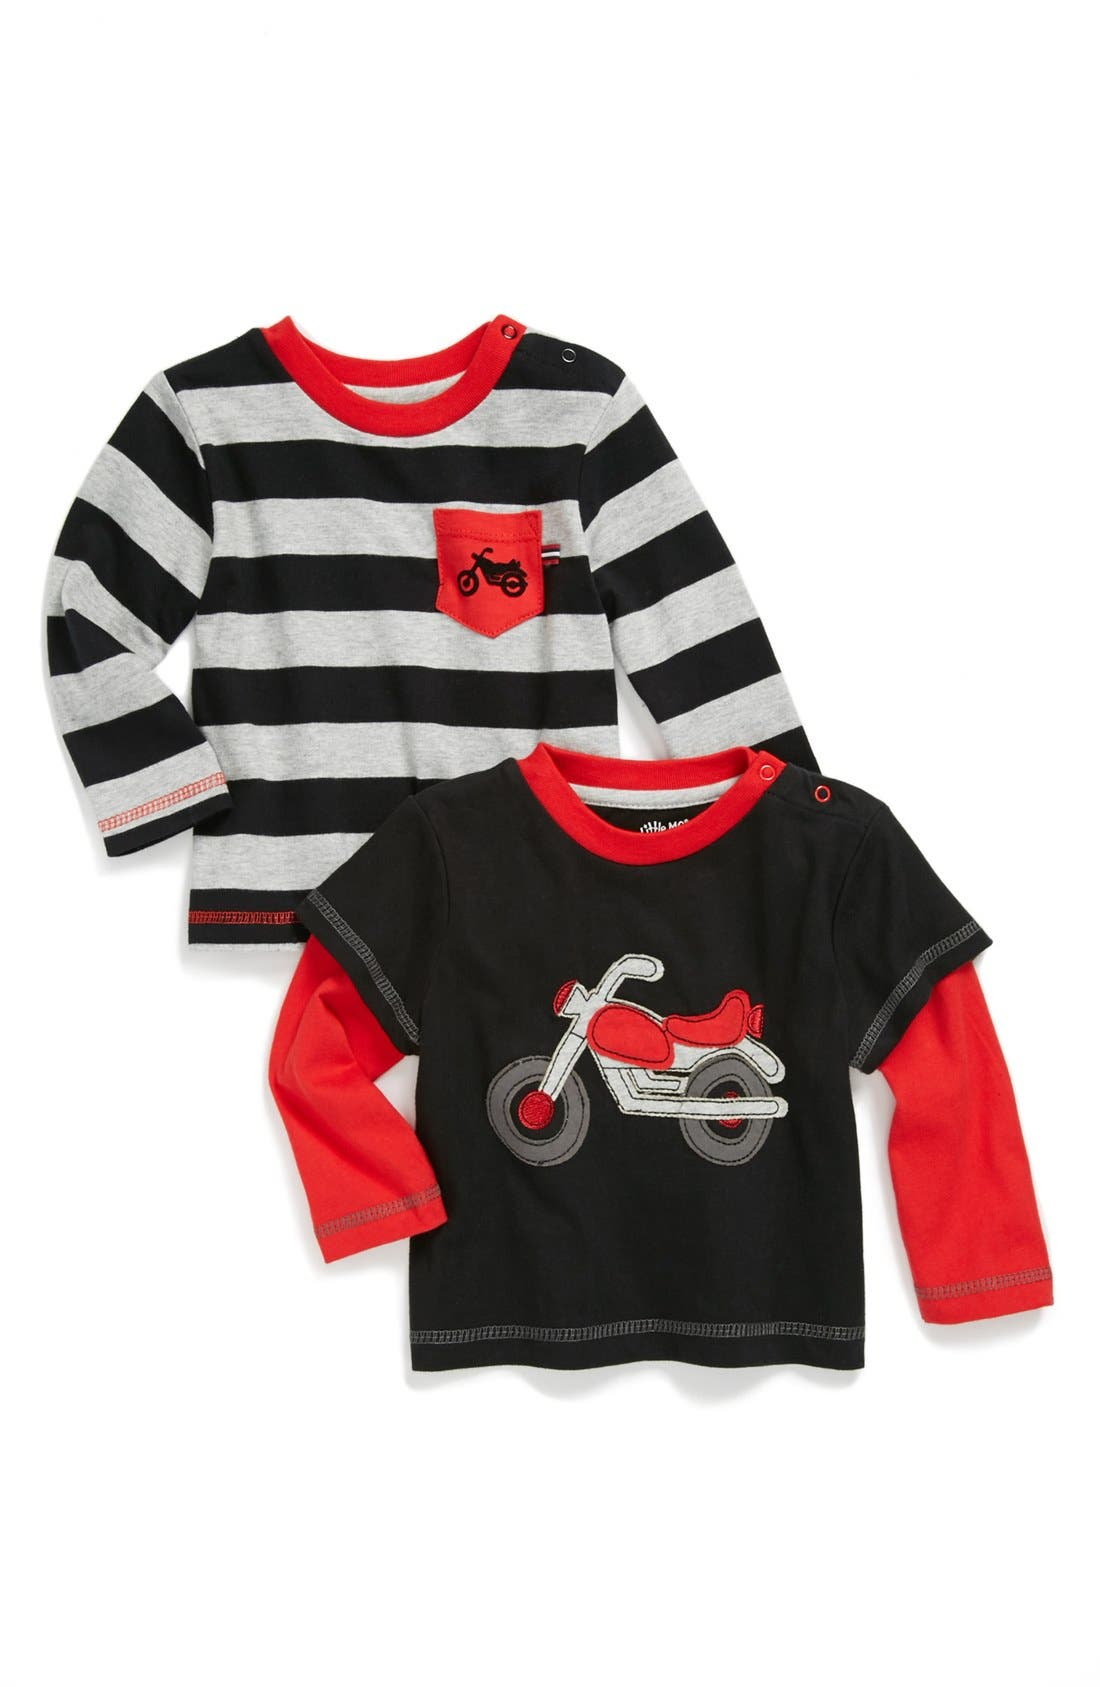 Main Image - Little Me 'Motorcycle' T-Shirt (2-Pack) (Baby Boys)